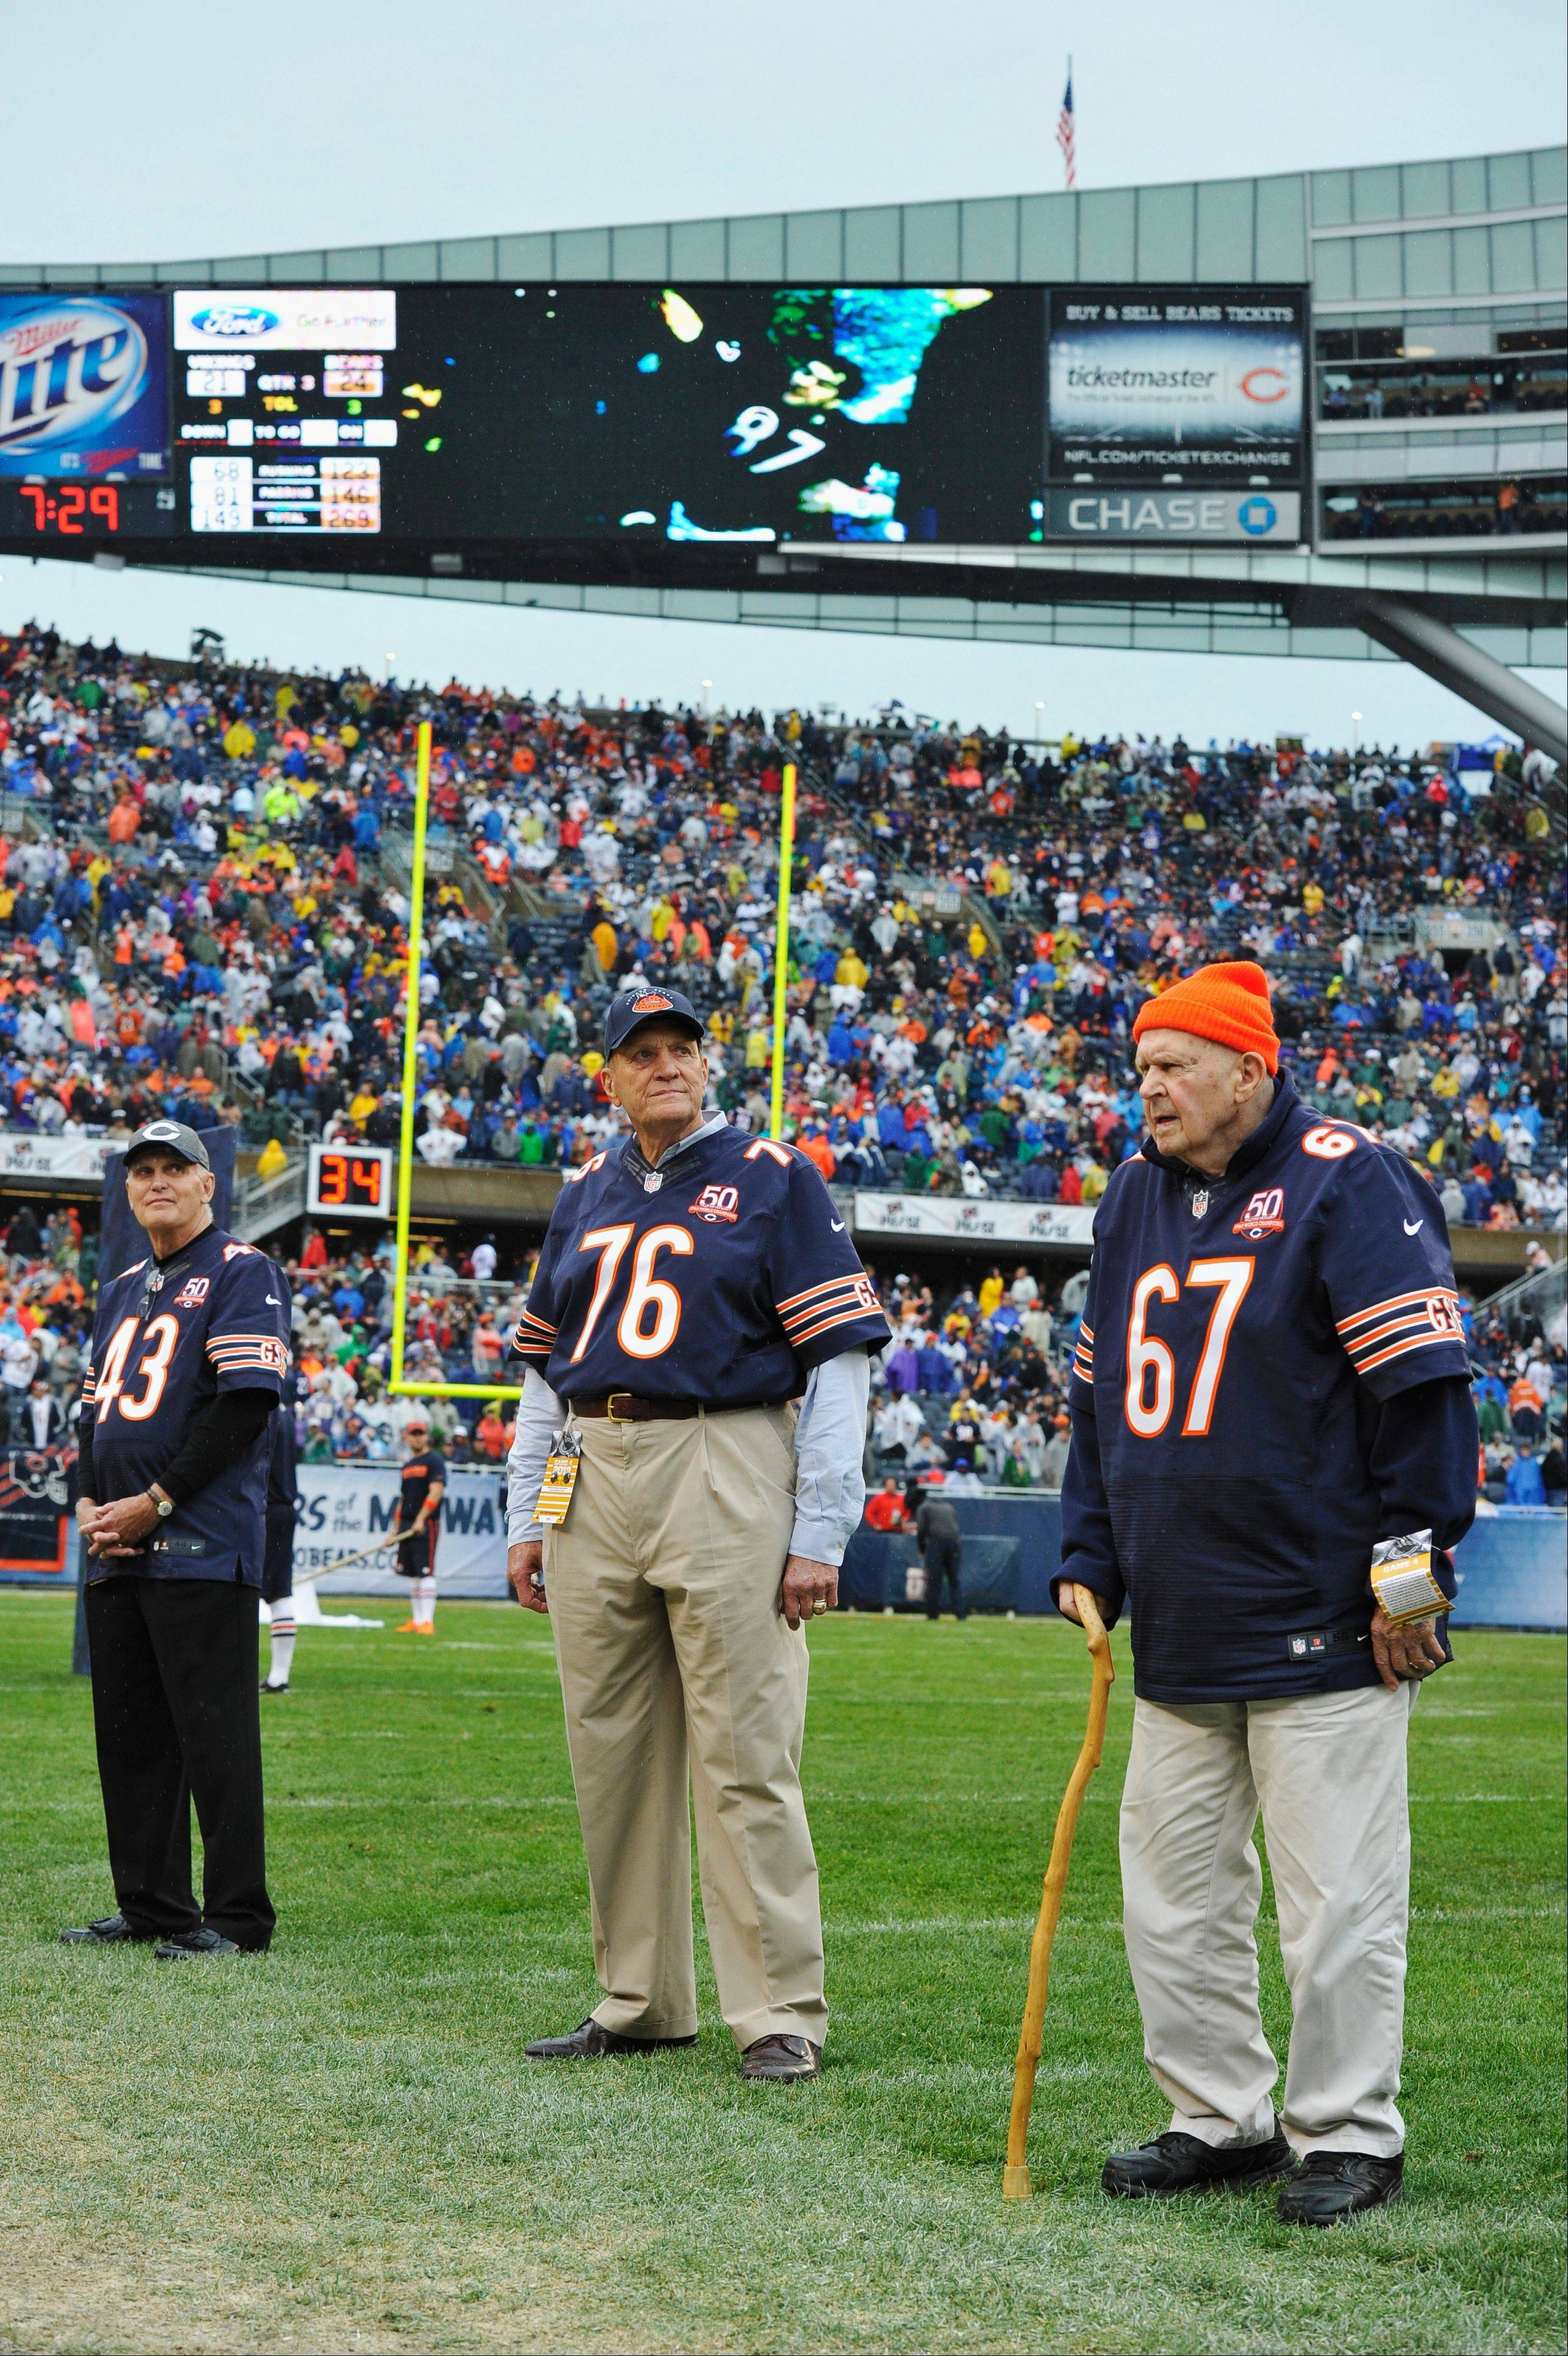 Former Chicago Bears players cornerback Larry Glueck (43), defensive tackle John Johnson (76) and offensive guard Ted Karras (67) were honored at halftime of Sunday's Bears-Vikings game to celebrate thier NFL Championship over the New York Giants 50 years ago.